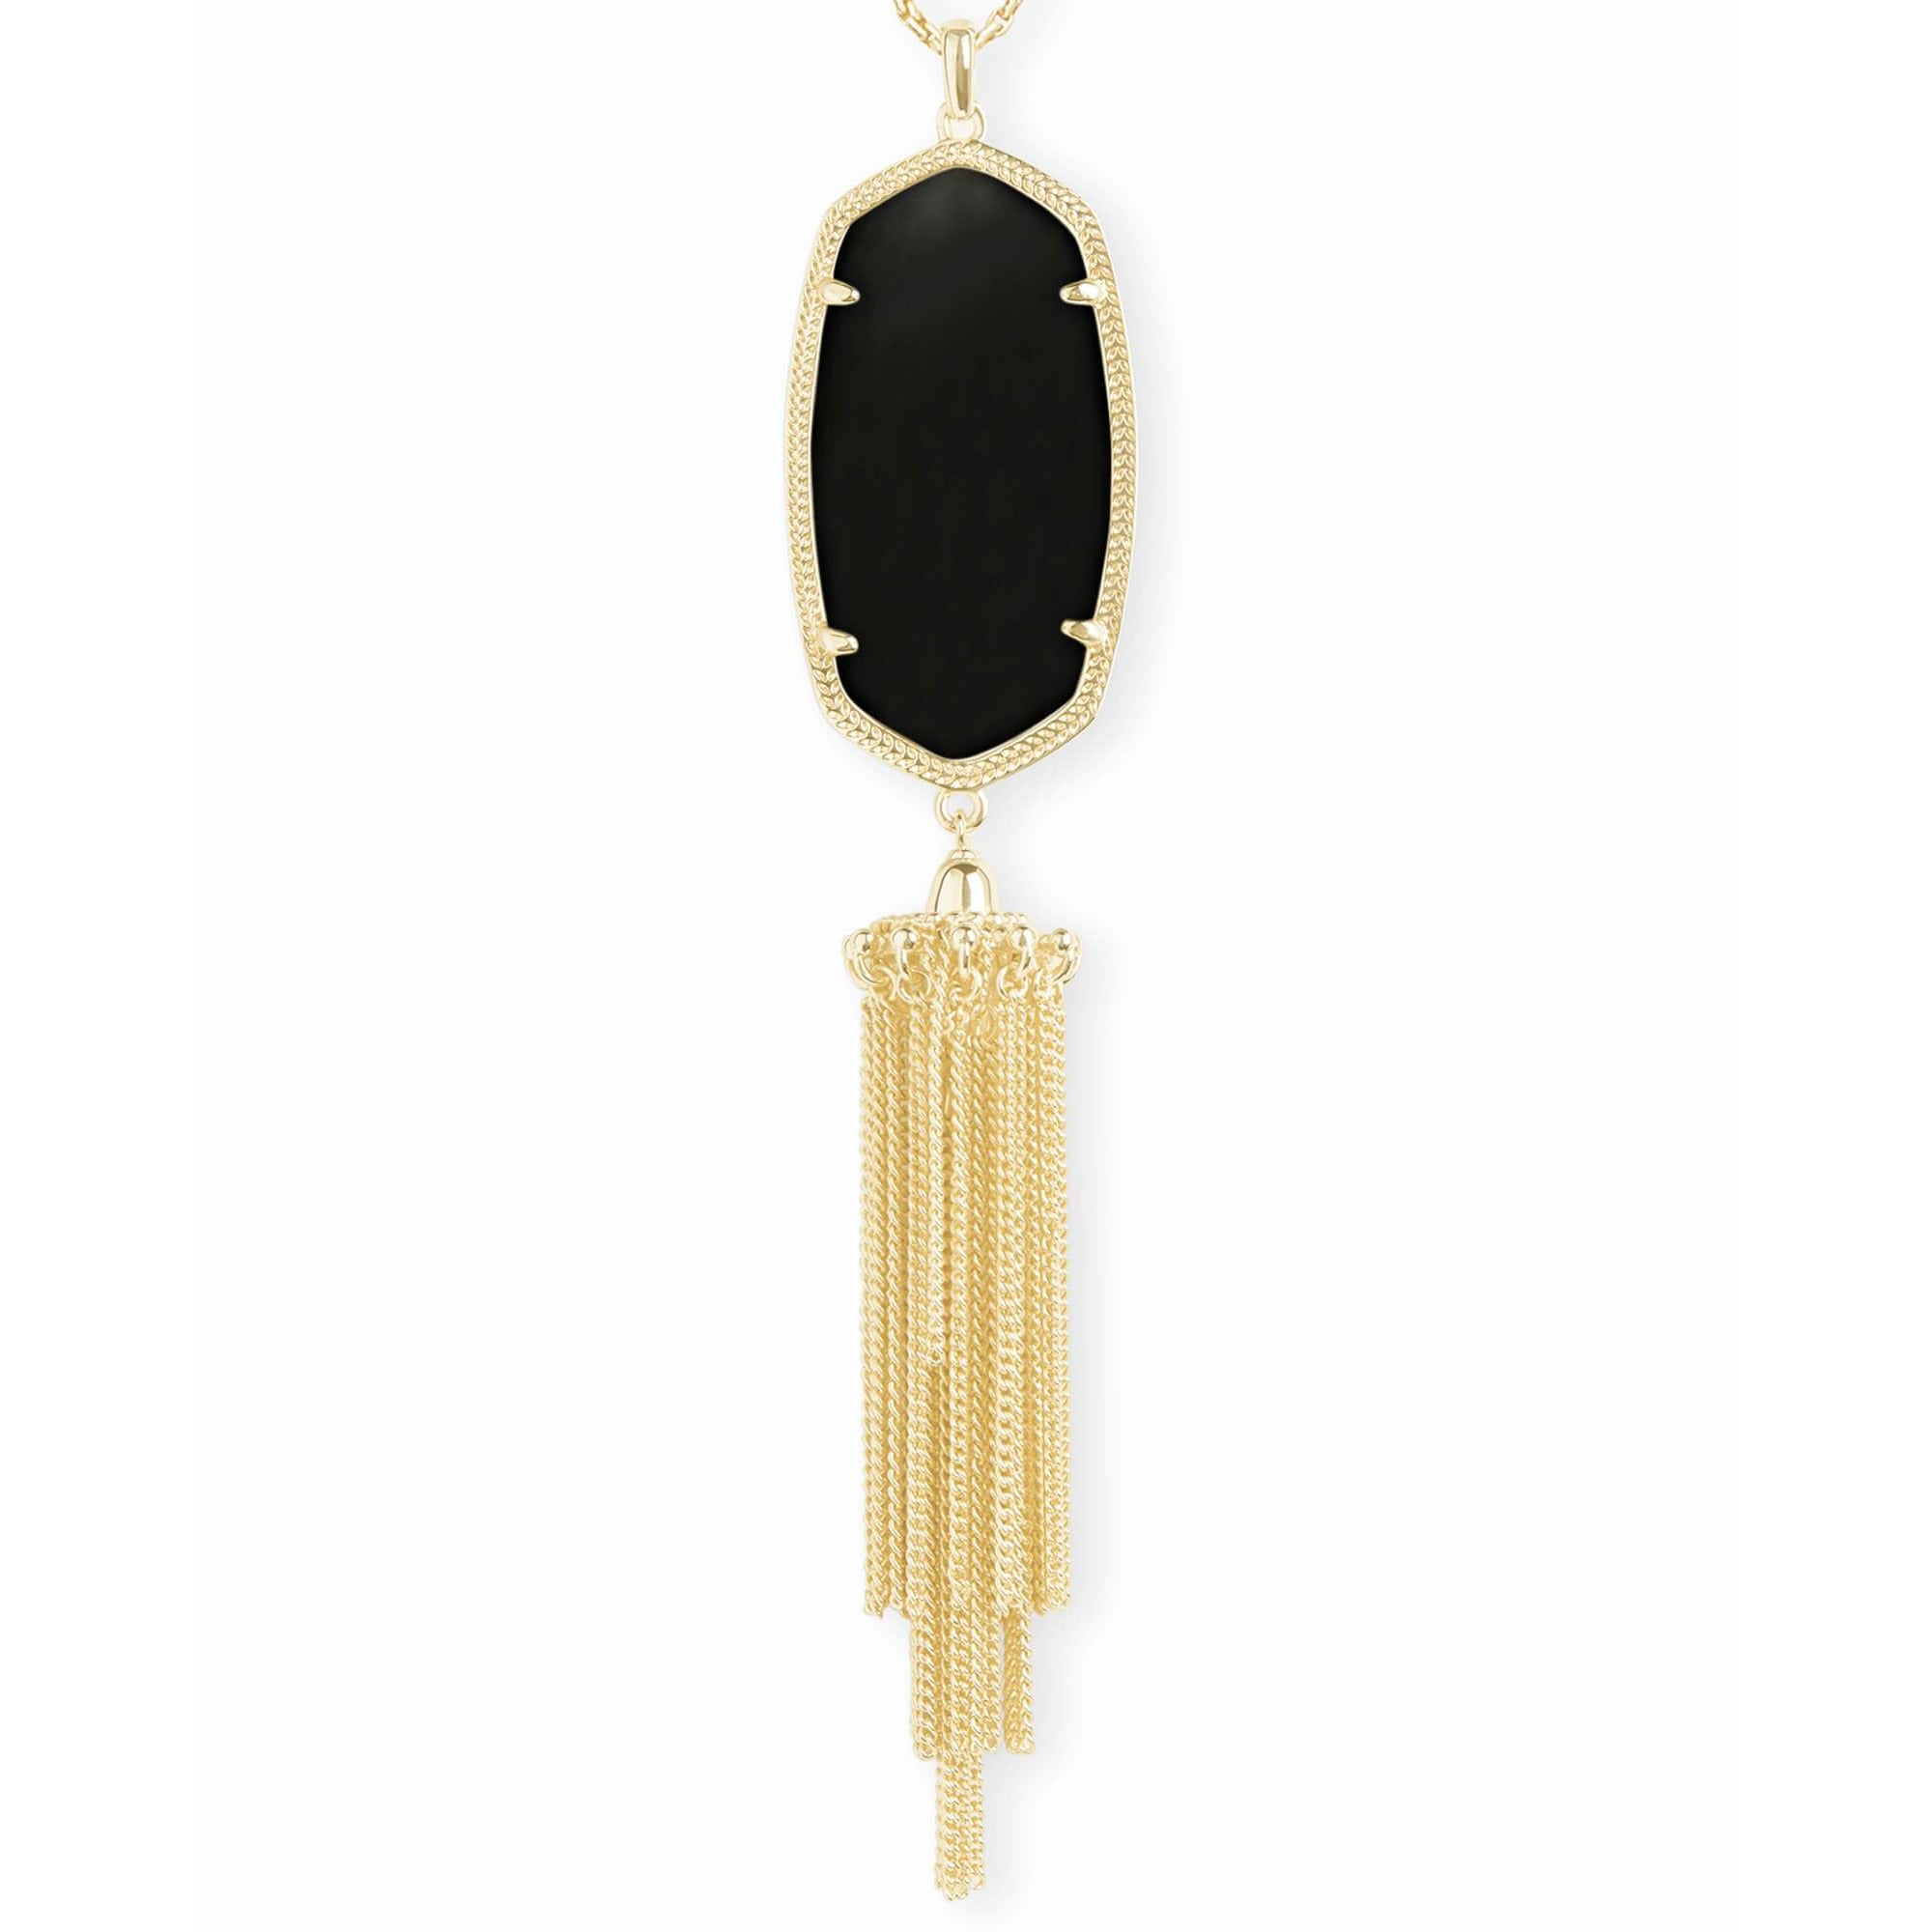 Kendra Scott - Rayne Gold Long Pendant Necklace In Black Opaque Glass close up